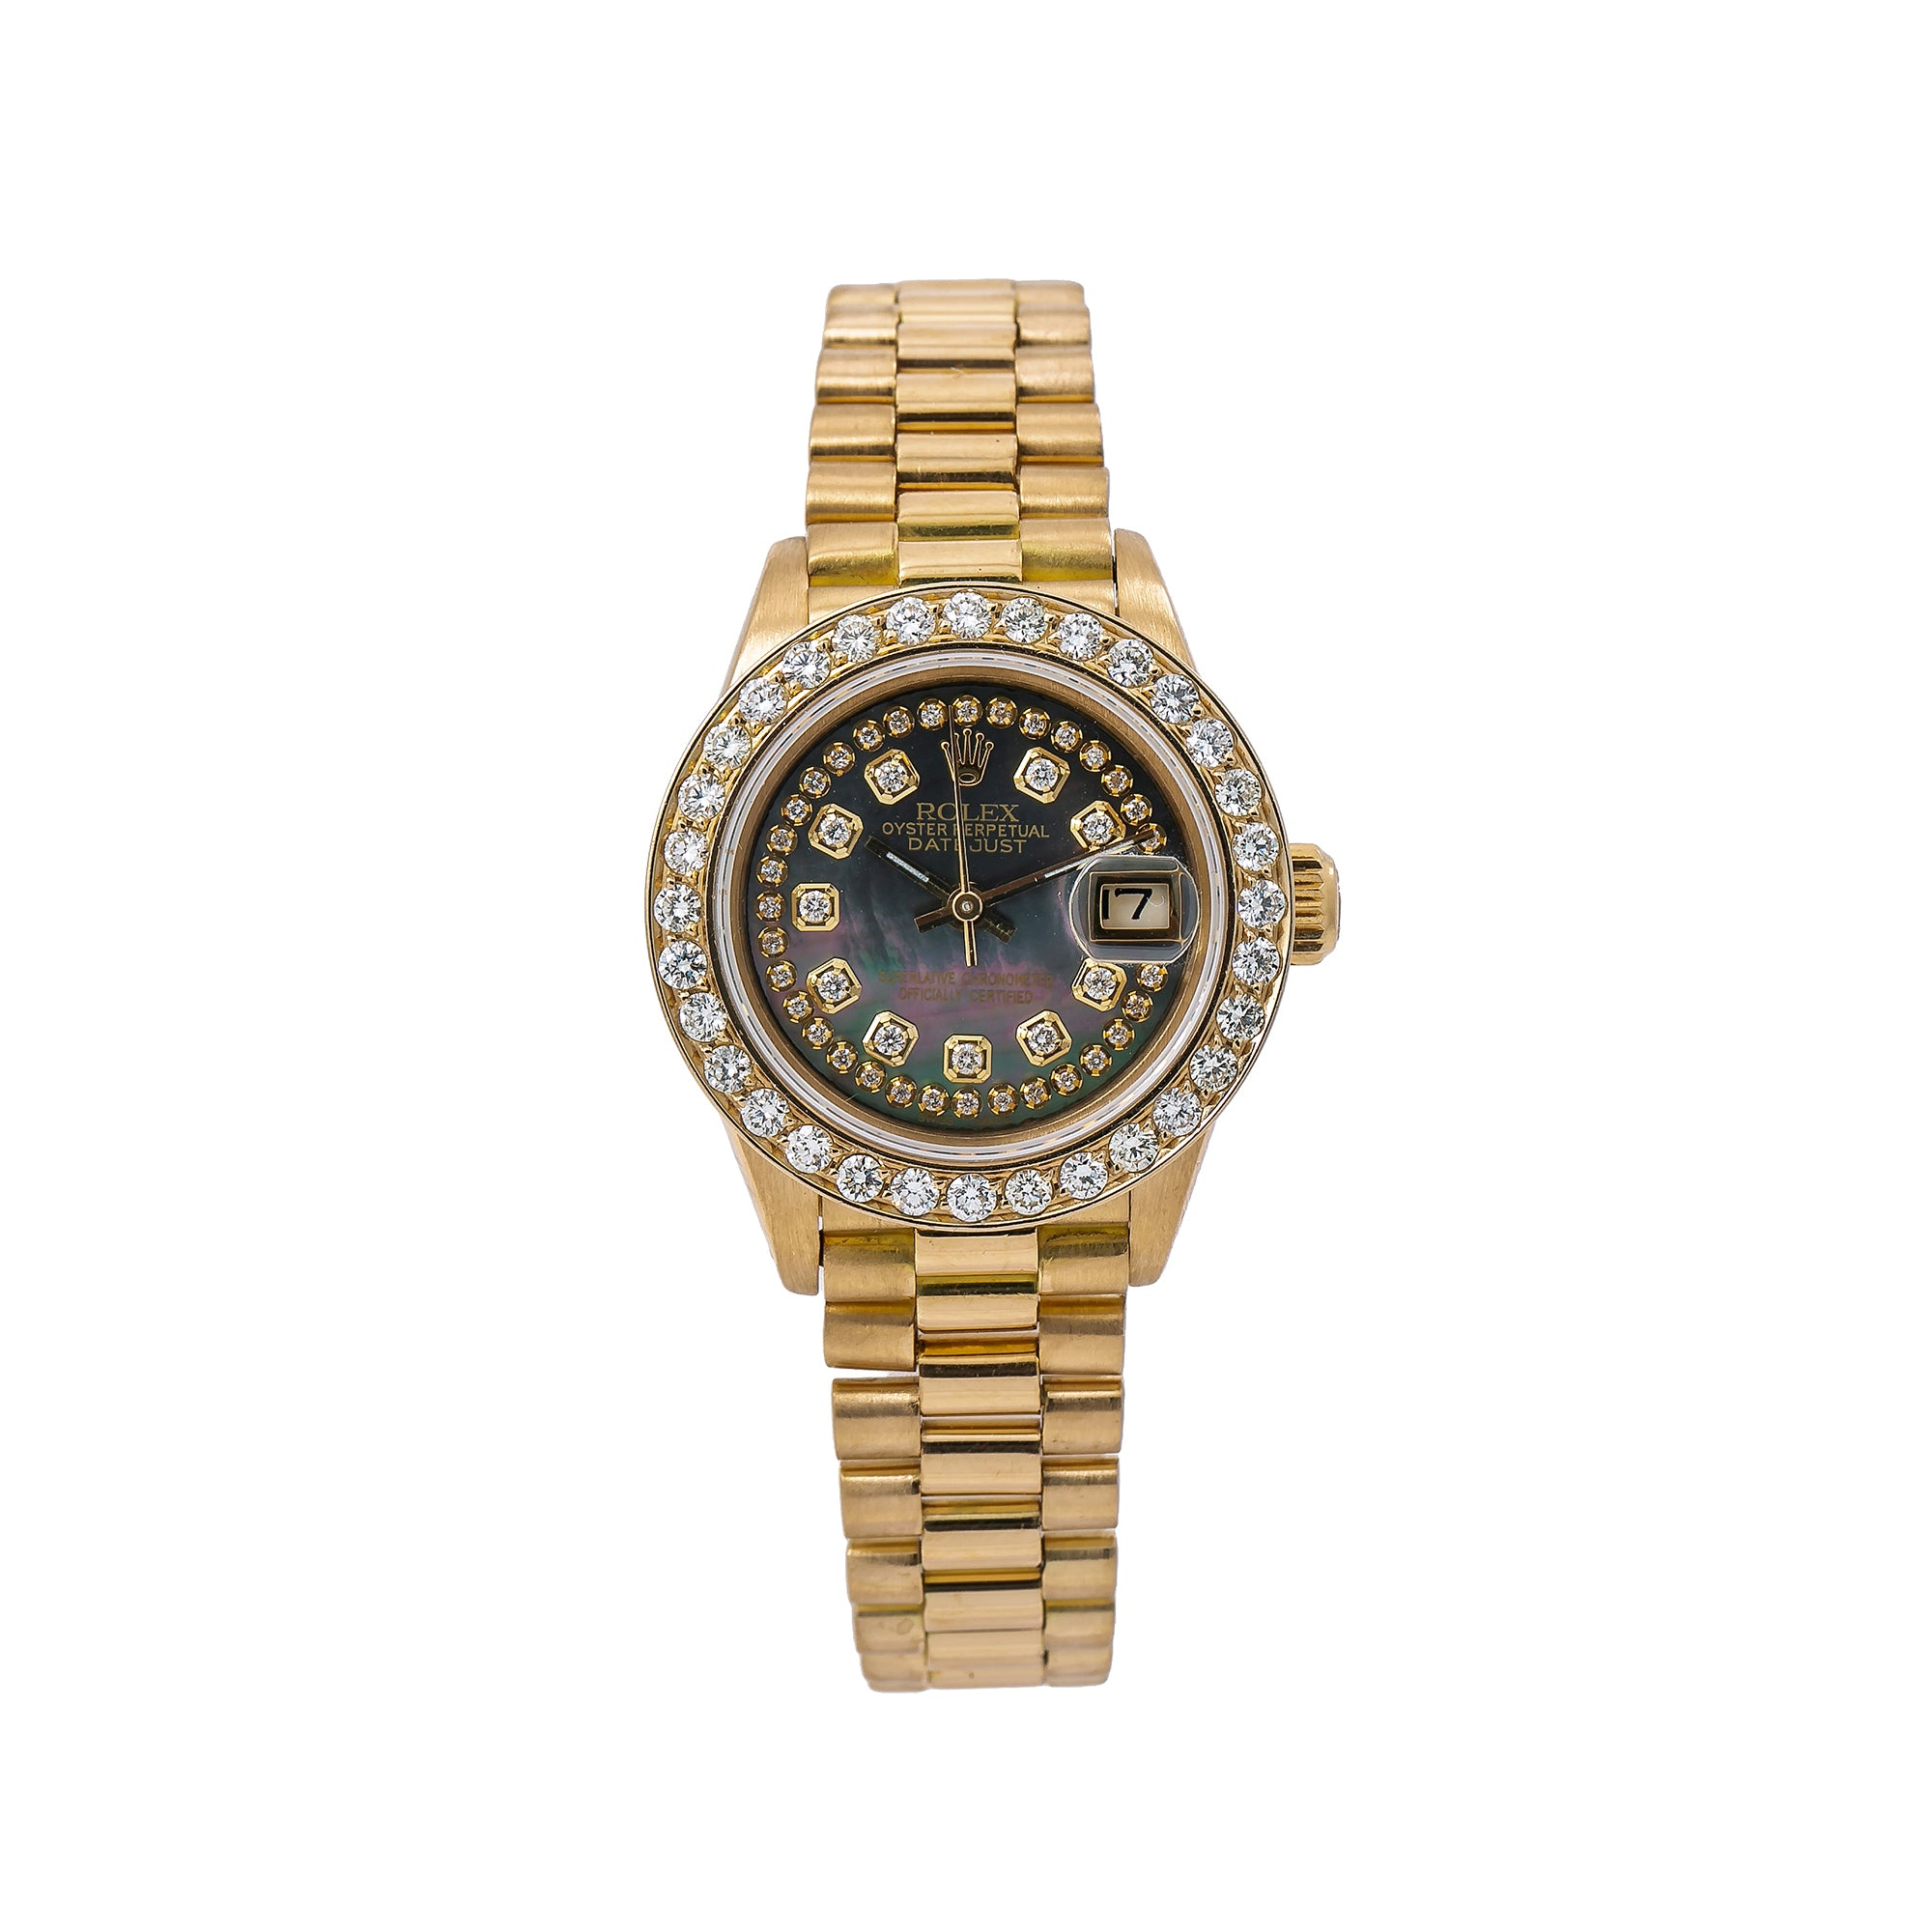 Rolex Lady-Datejust Diamond Watch, 6917 26mm, Black Diamond Dial With Yellow Gold Bracelet